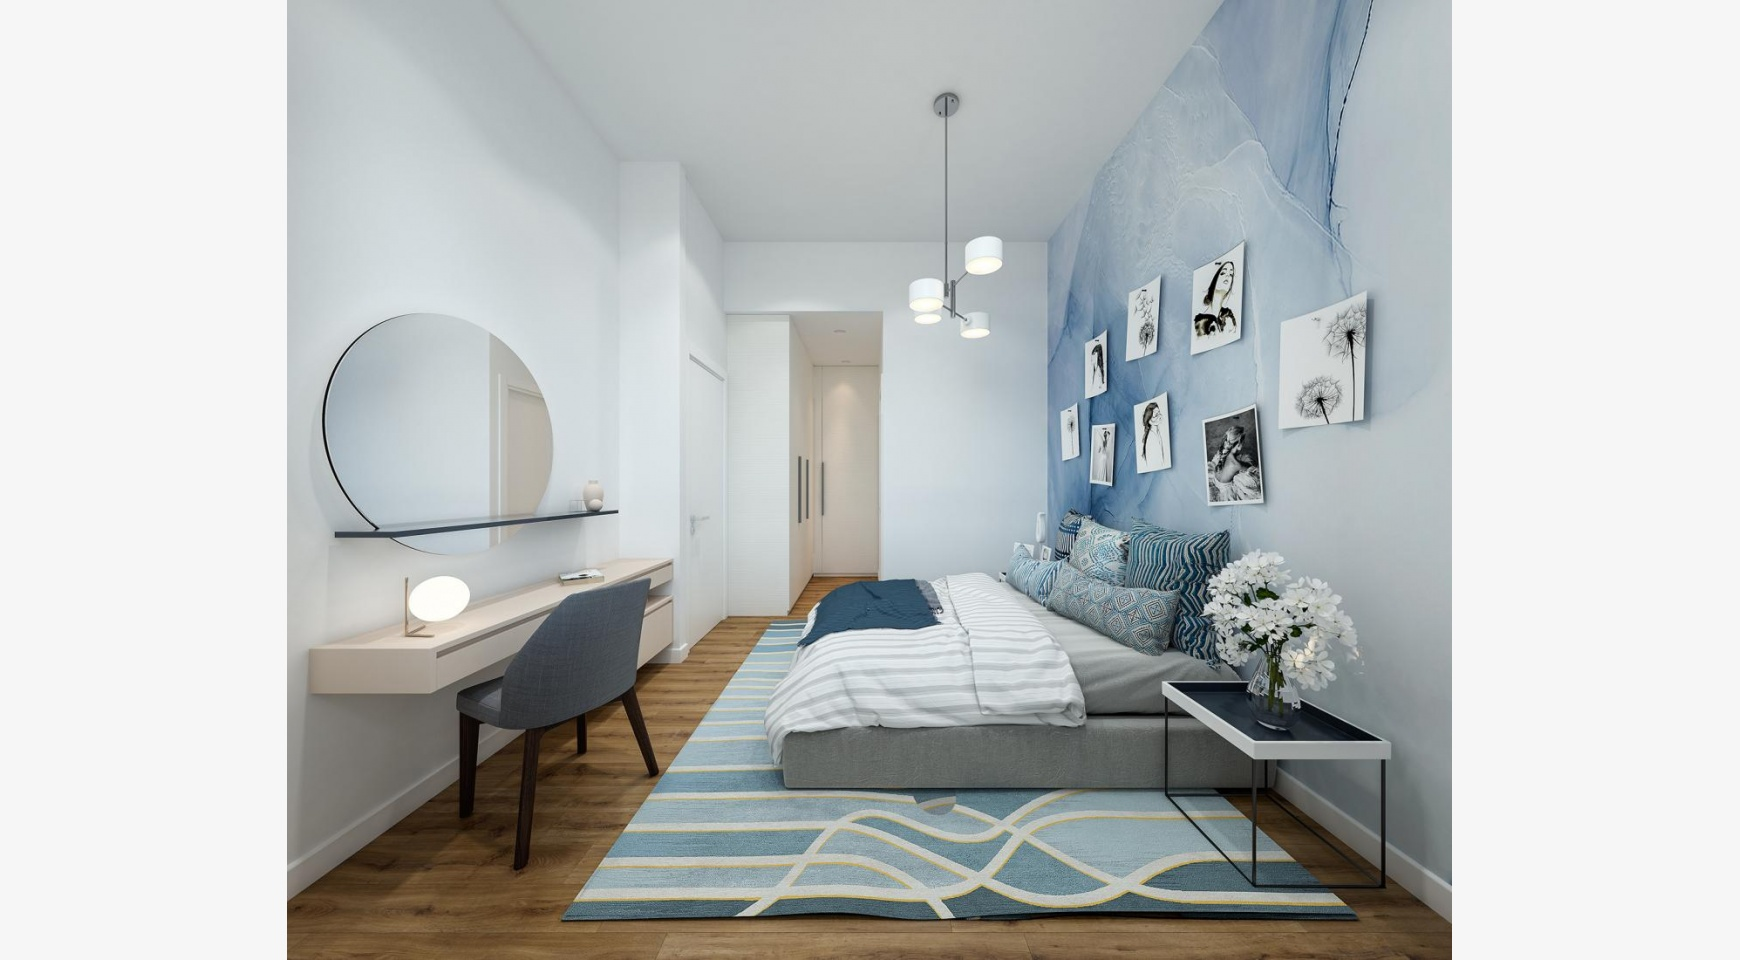 Urban City Residences, Block B. New Spacious 2 Bedroom Apartment 302 in the City Centre - 11